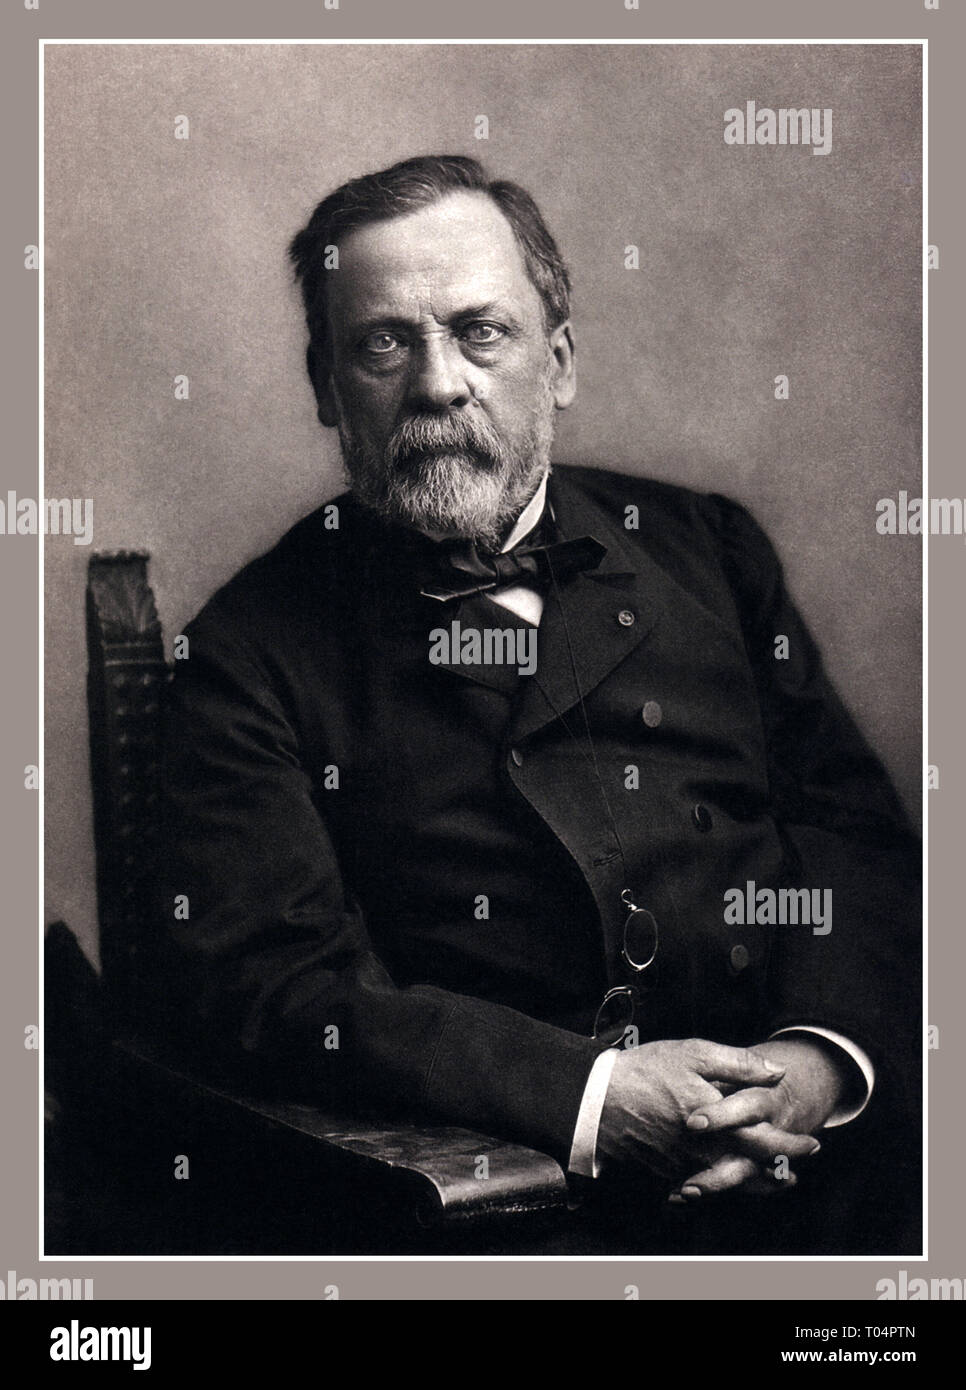 LOUIS PASTEUR Historic studio portrait by renowned innovative French photographer Nadar of Louis Pasteur 1822-1895 A leading French chemist, scientist and microbiologist. Louis Pasteur is commonly credited with being one of the scientists who proved the existence of living organisms too small for the human eye to see. - Stock Image